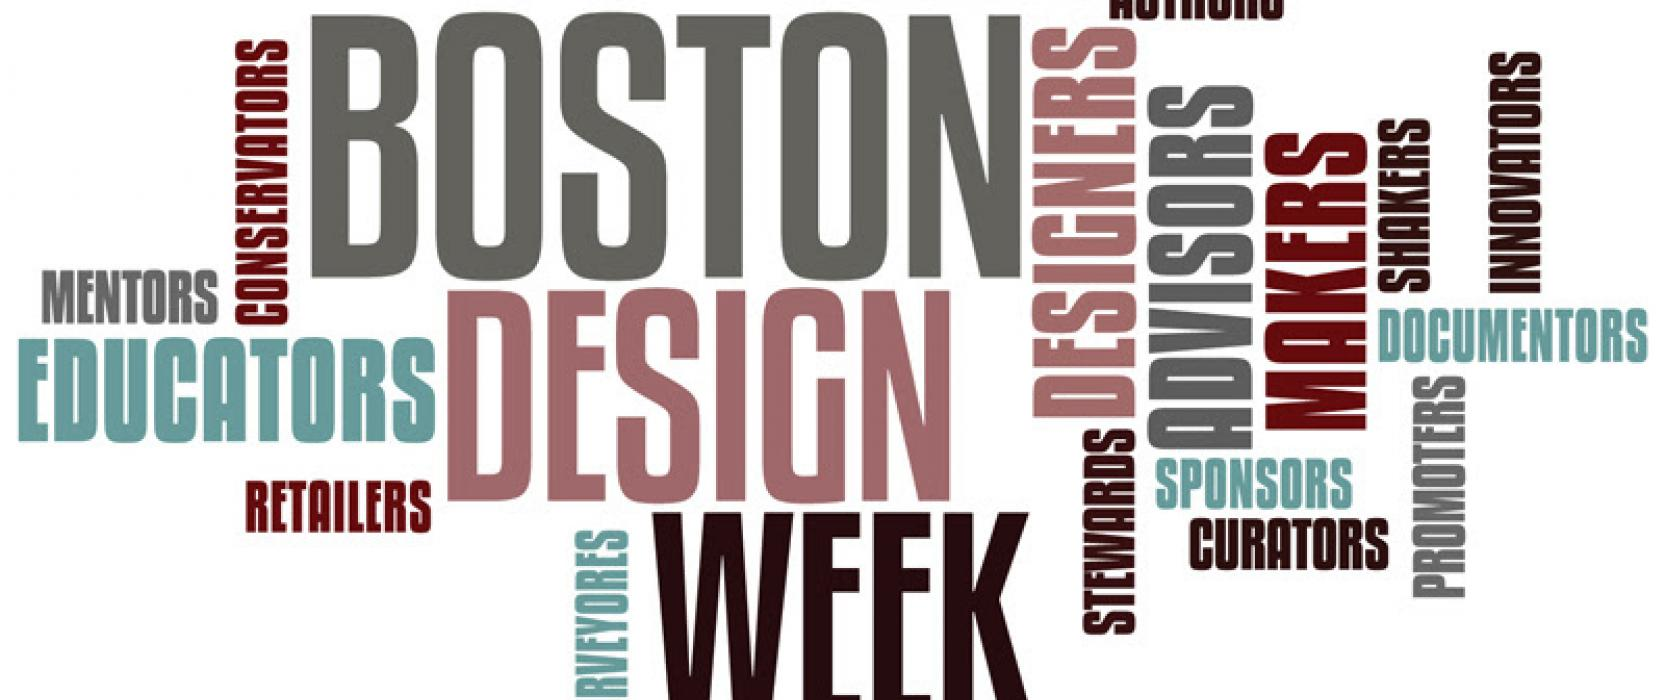 Boston Design Week Call for Events